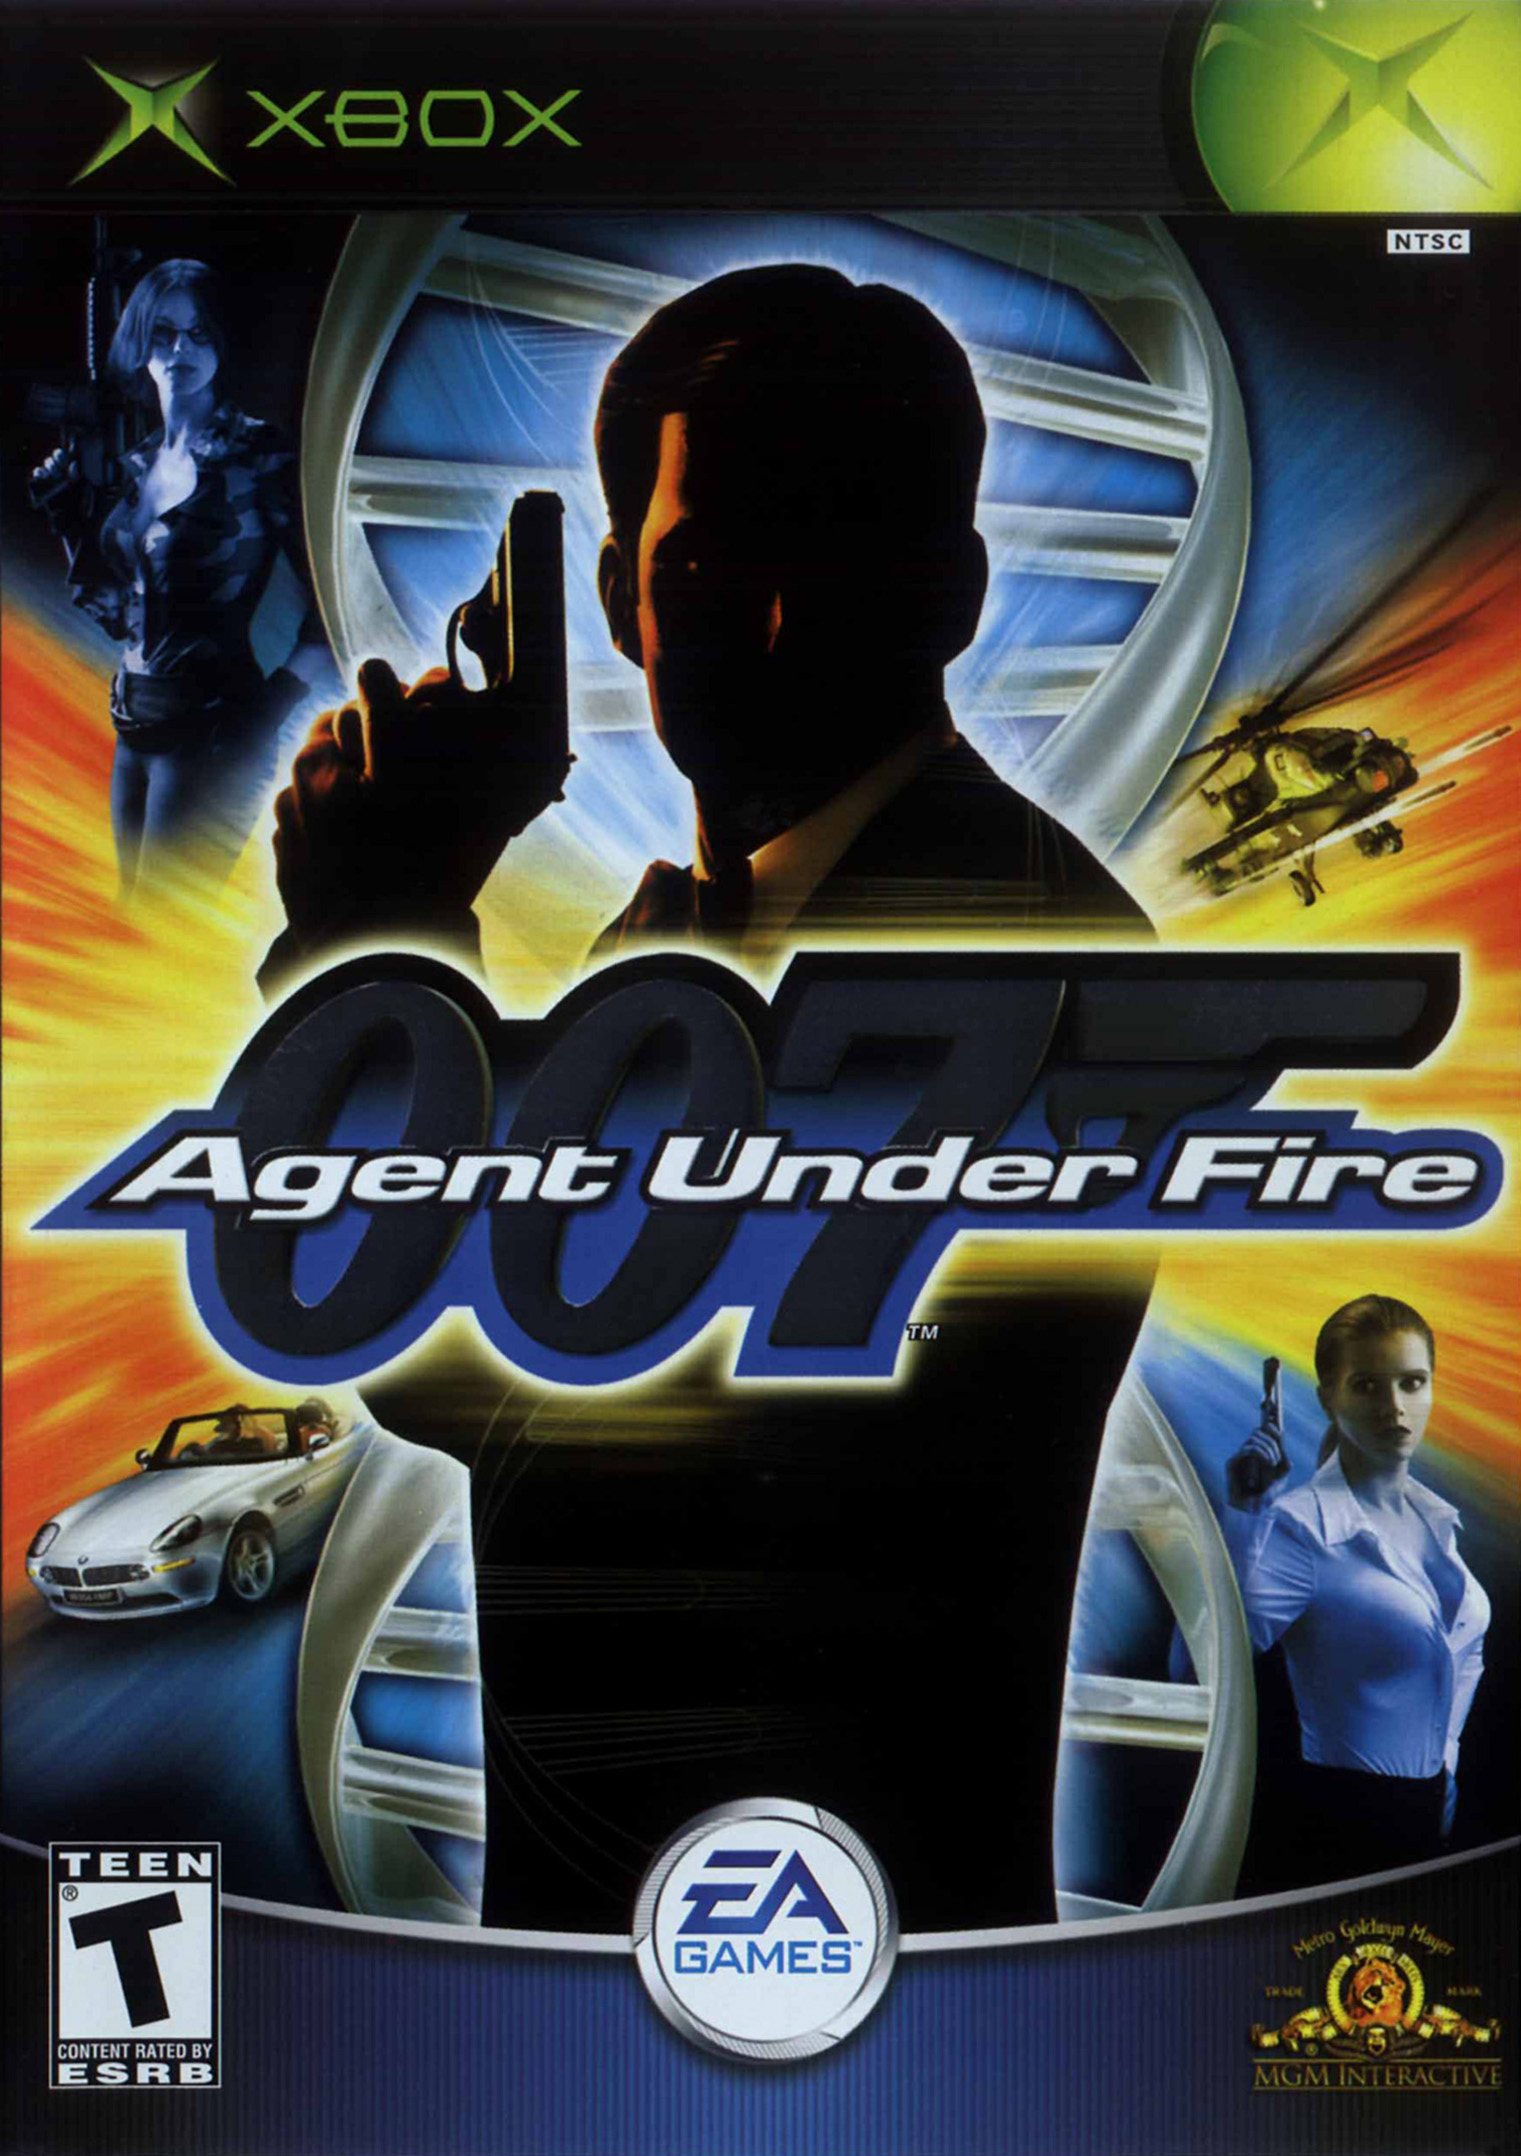 007 Agent Under Fire/Xbox